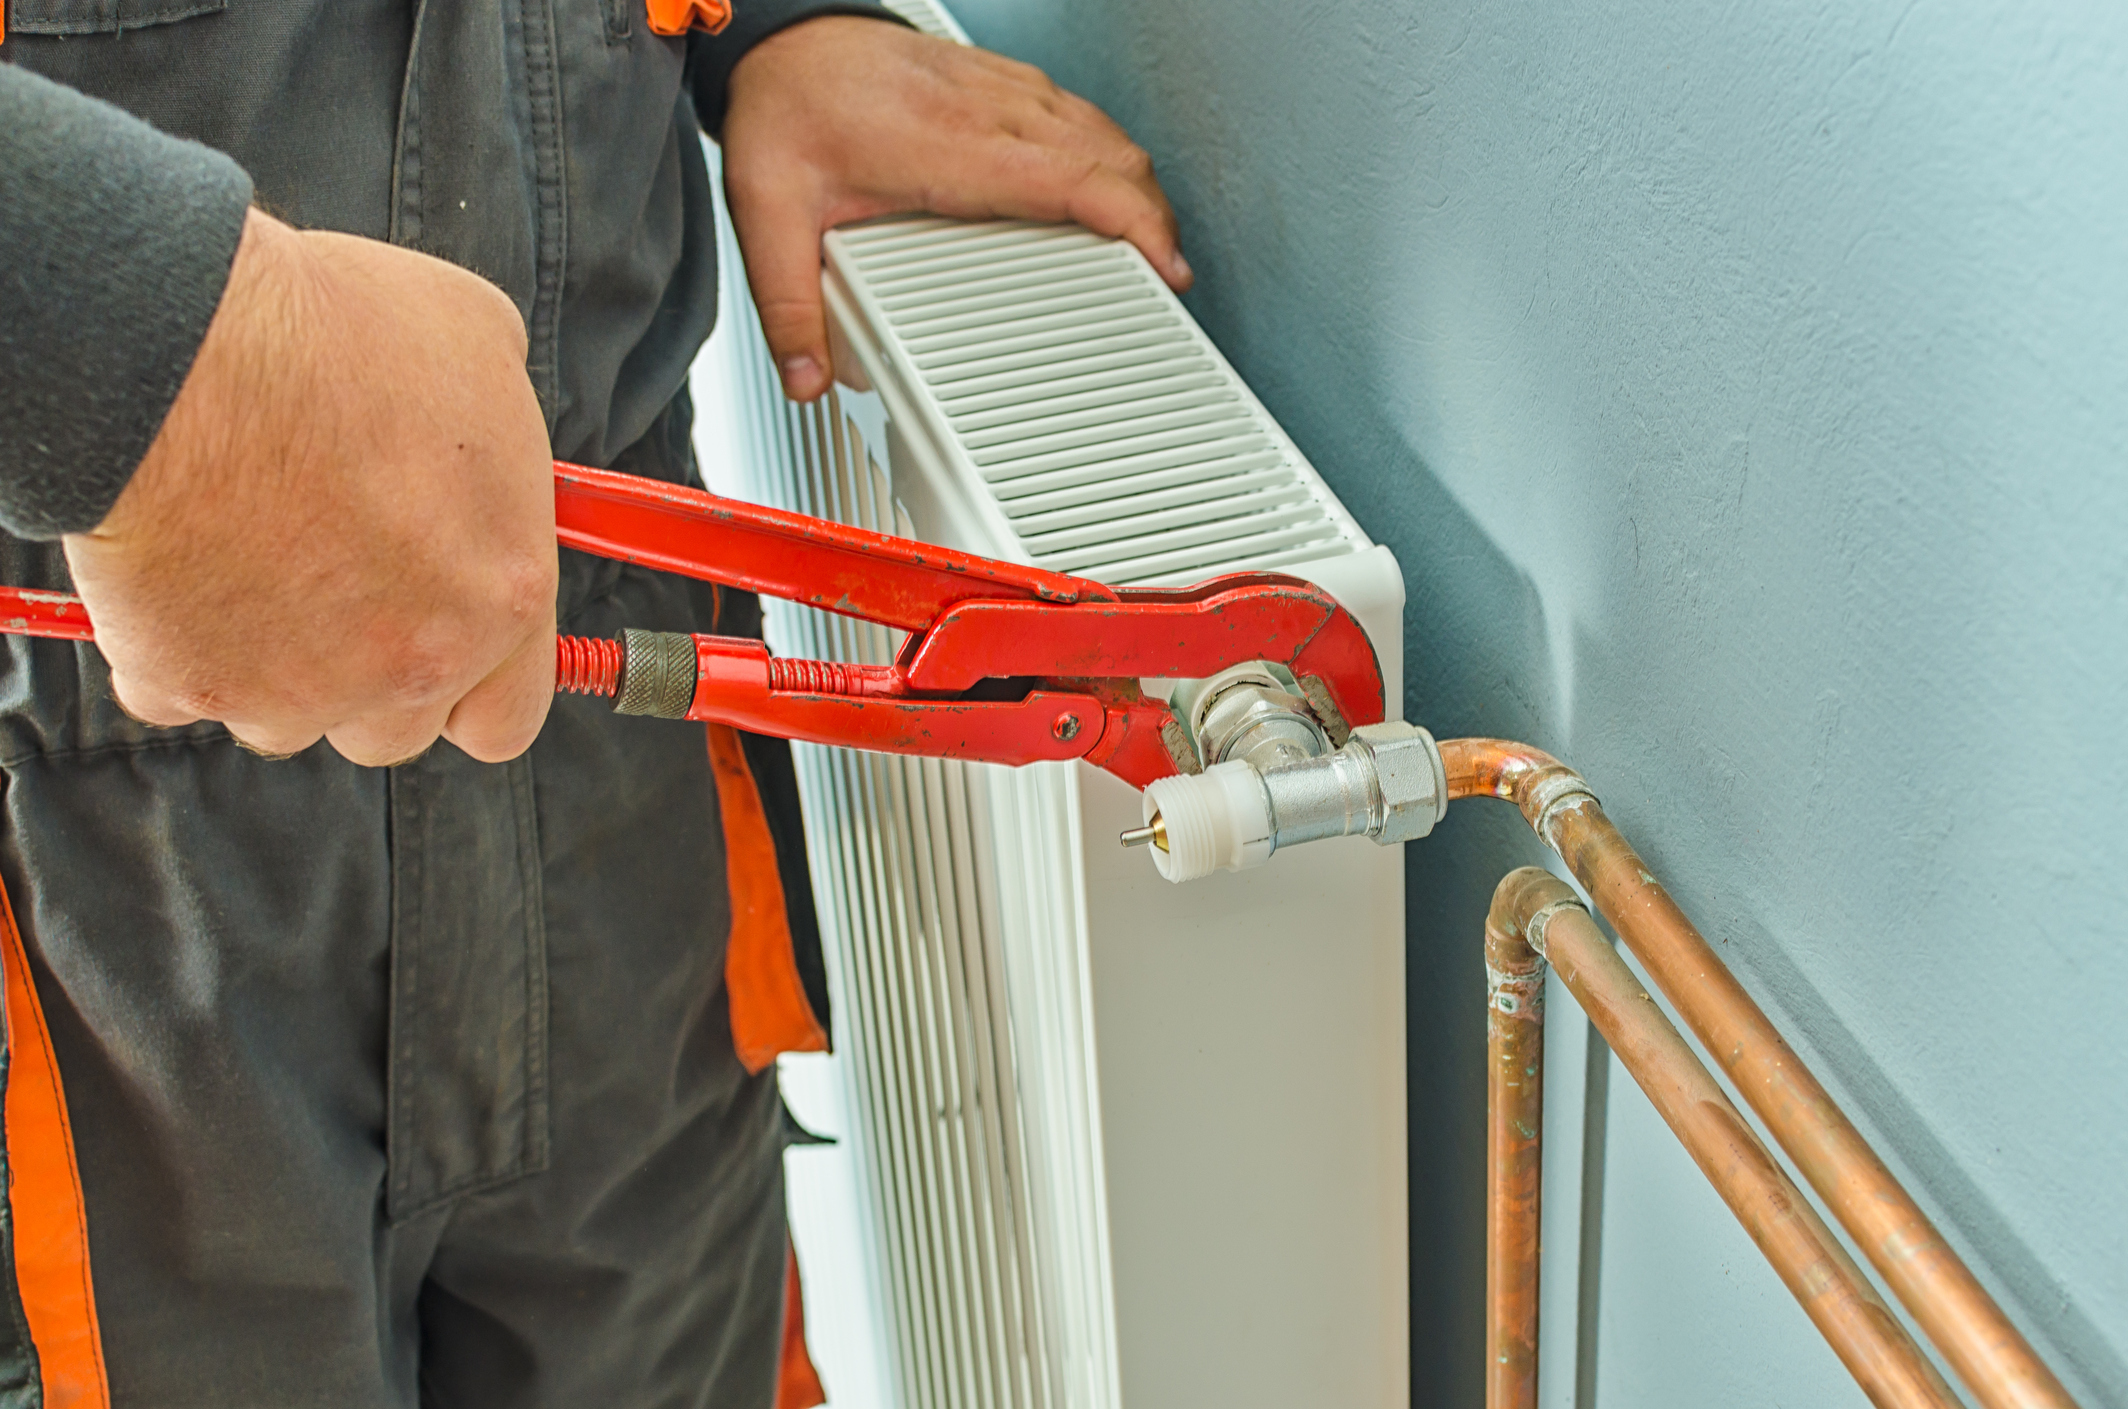 Heater Repair in Livonia MI - D&G Heating & Cooling